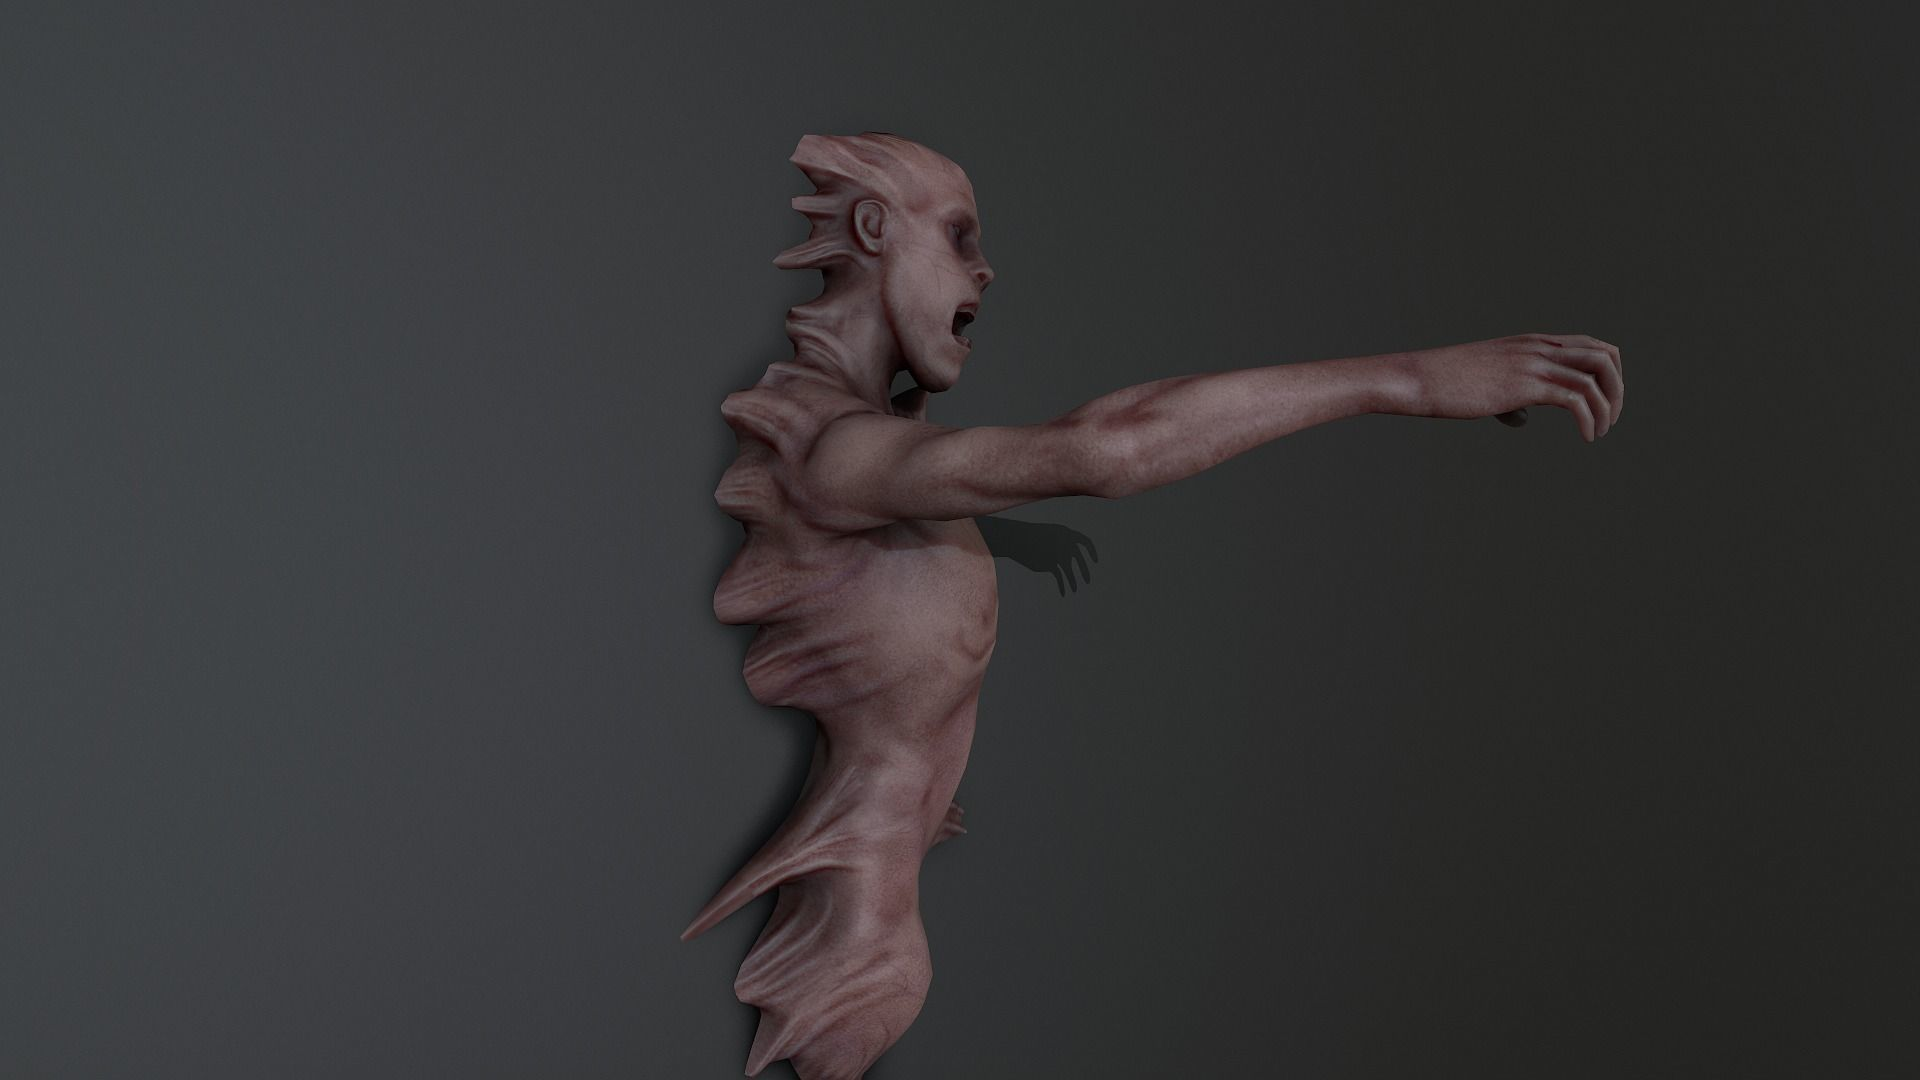 Horror man Mutated on wall ANimated